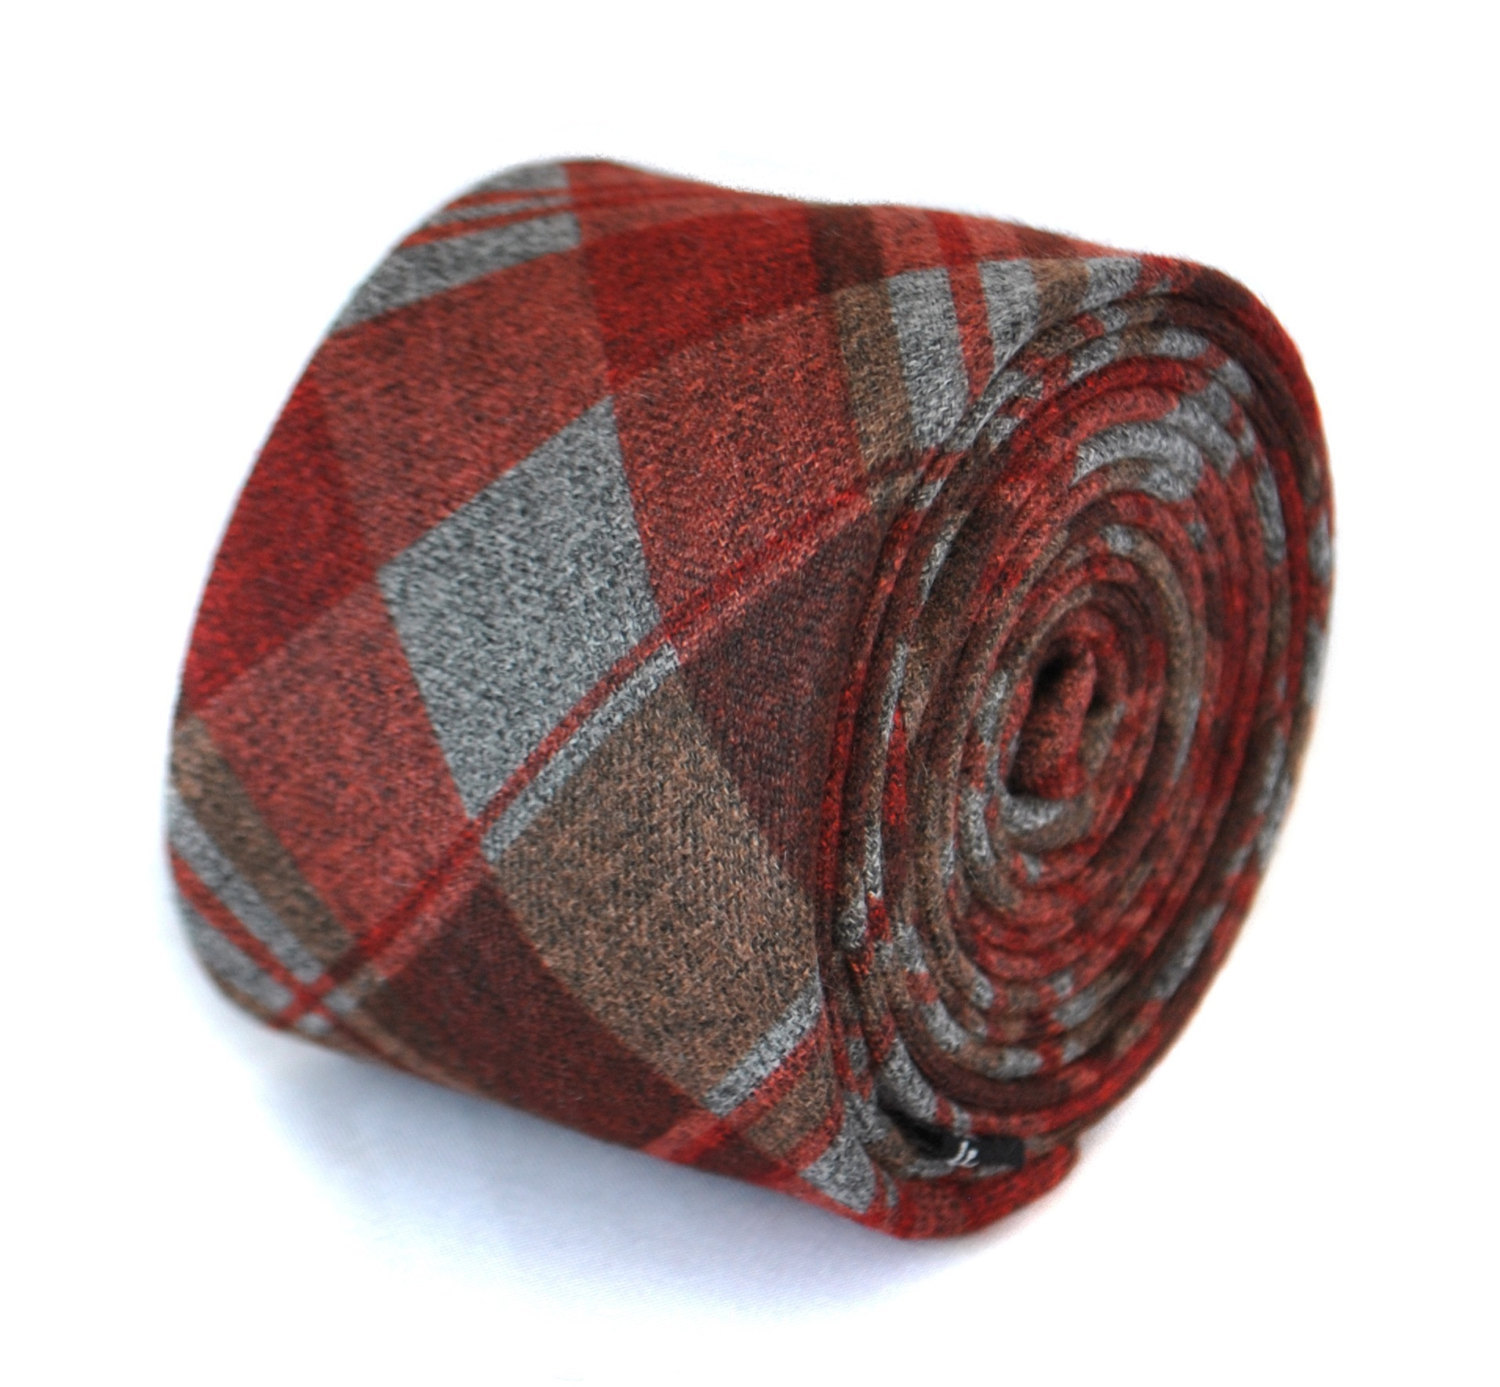 red, grey and brown 100% wool tweed check tie by Frederick Thomas FT2078